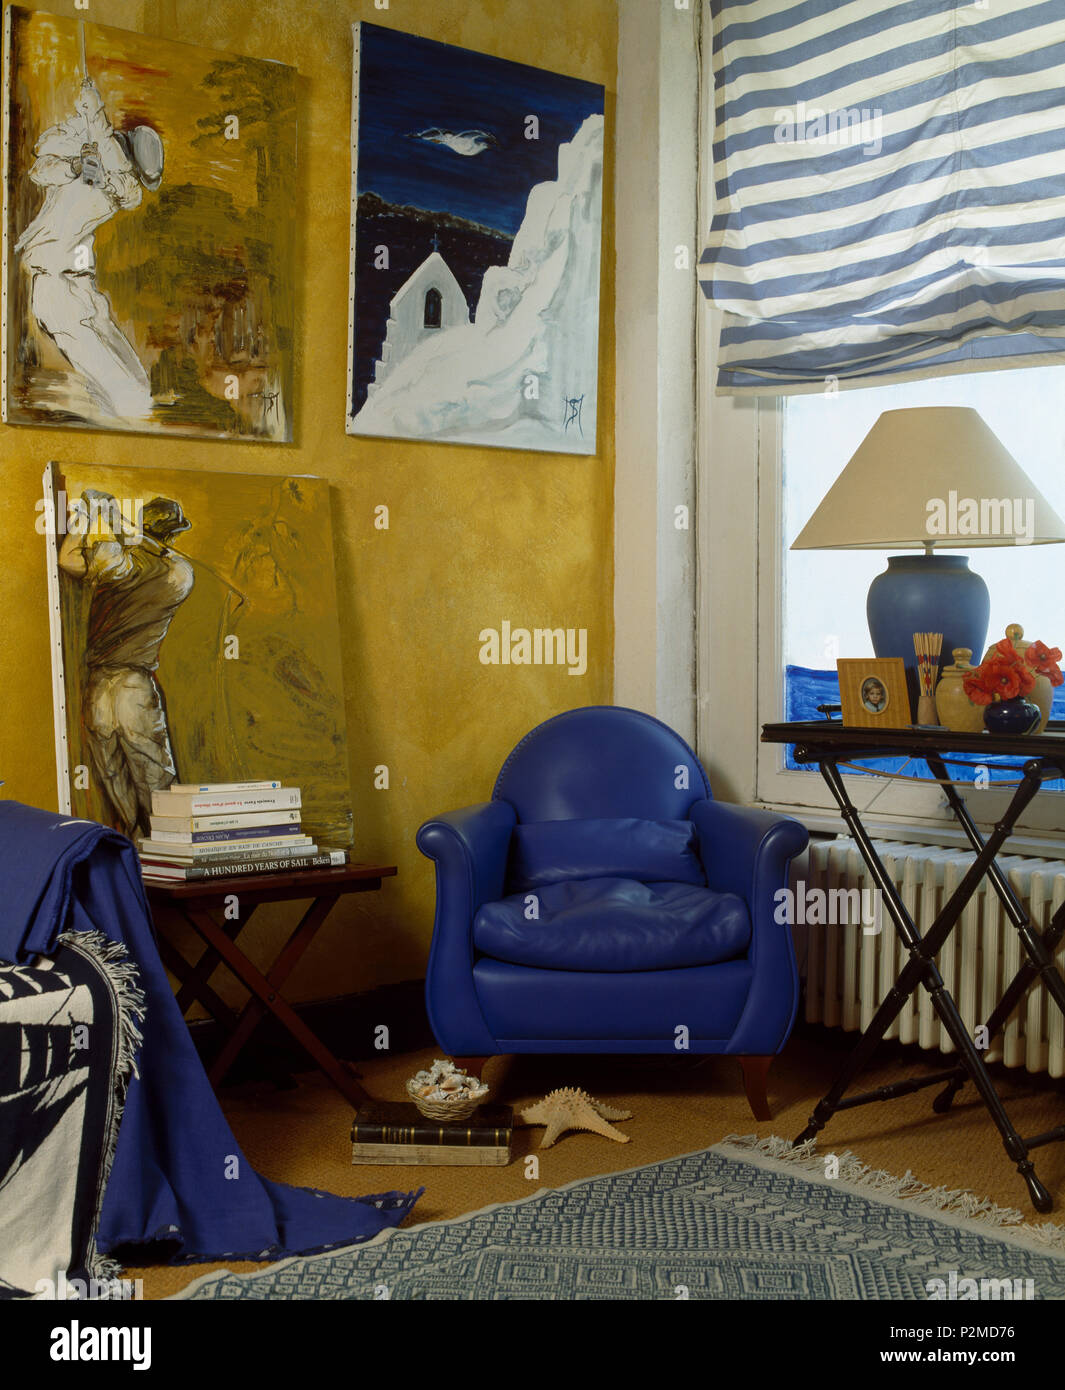 Large Paintings On Wall Above Bright Blue Leather Armchair In Corner Of  Living Room With Striped Blind On Window